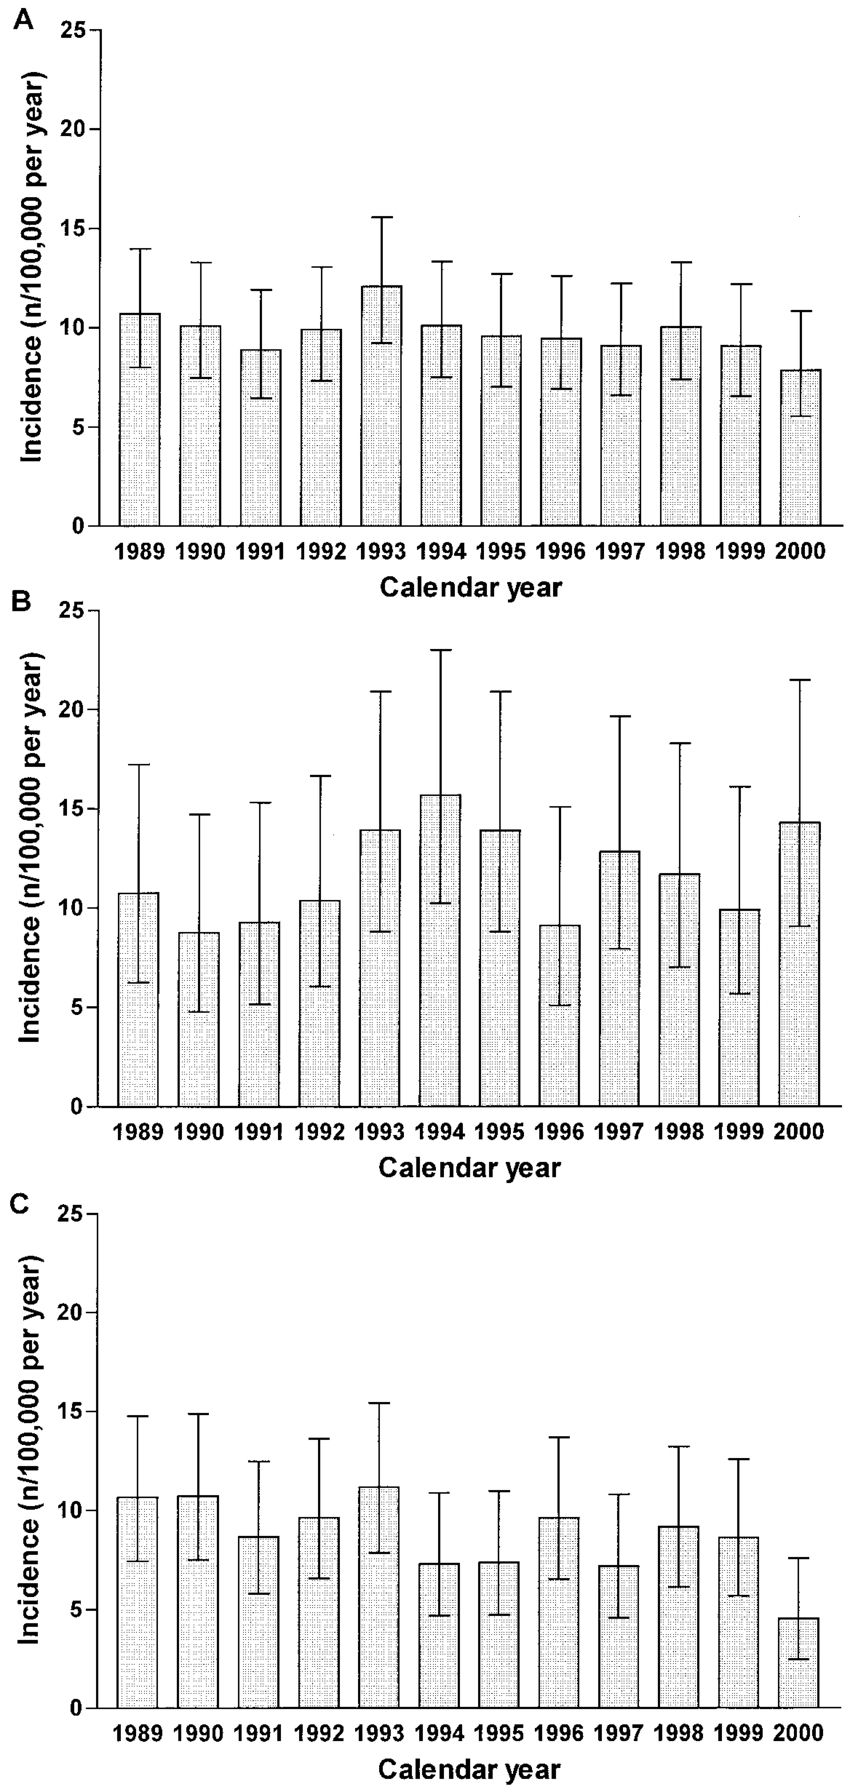 Ncidence Of Type 1 Diabetes In The Antwerp District with 1991 Calendar Year